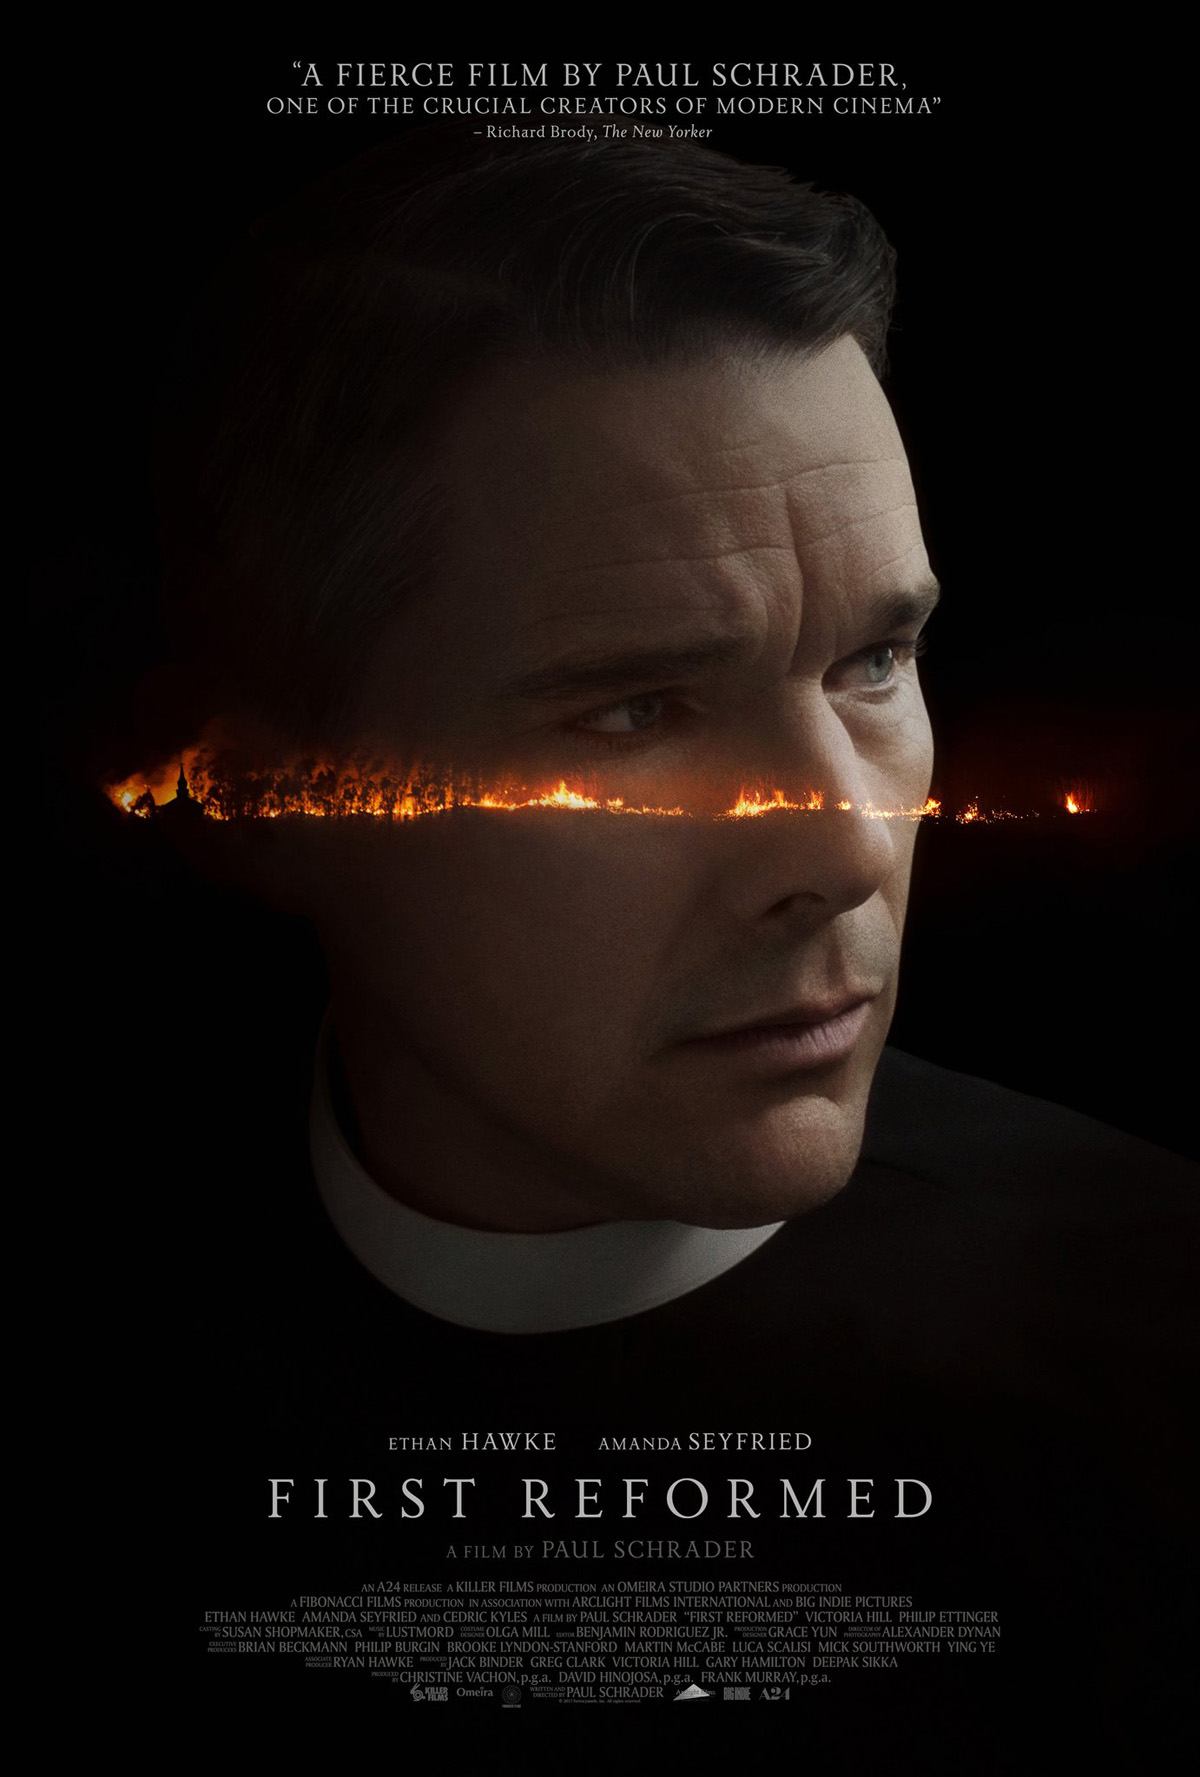 First Reformed (2017) - Directed by: Paul SchraderStarring: Ethan Hawke, Amanda Seyfried, Cedric (The Entertainer) KylesRated: RRunning Time: 1h 53mTMM Score: 5 stars out of 5 (I loved it)STRENGTHS: Acting, Subject Matter, Meditative PaceWEAKNESSES: None